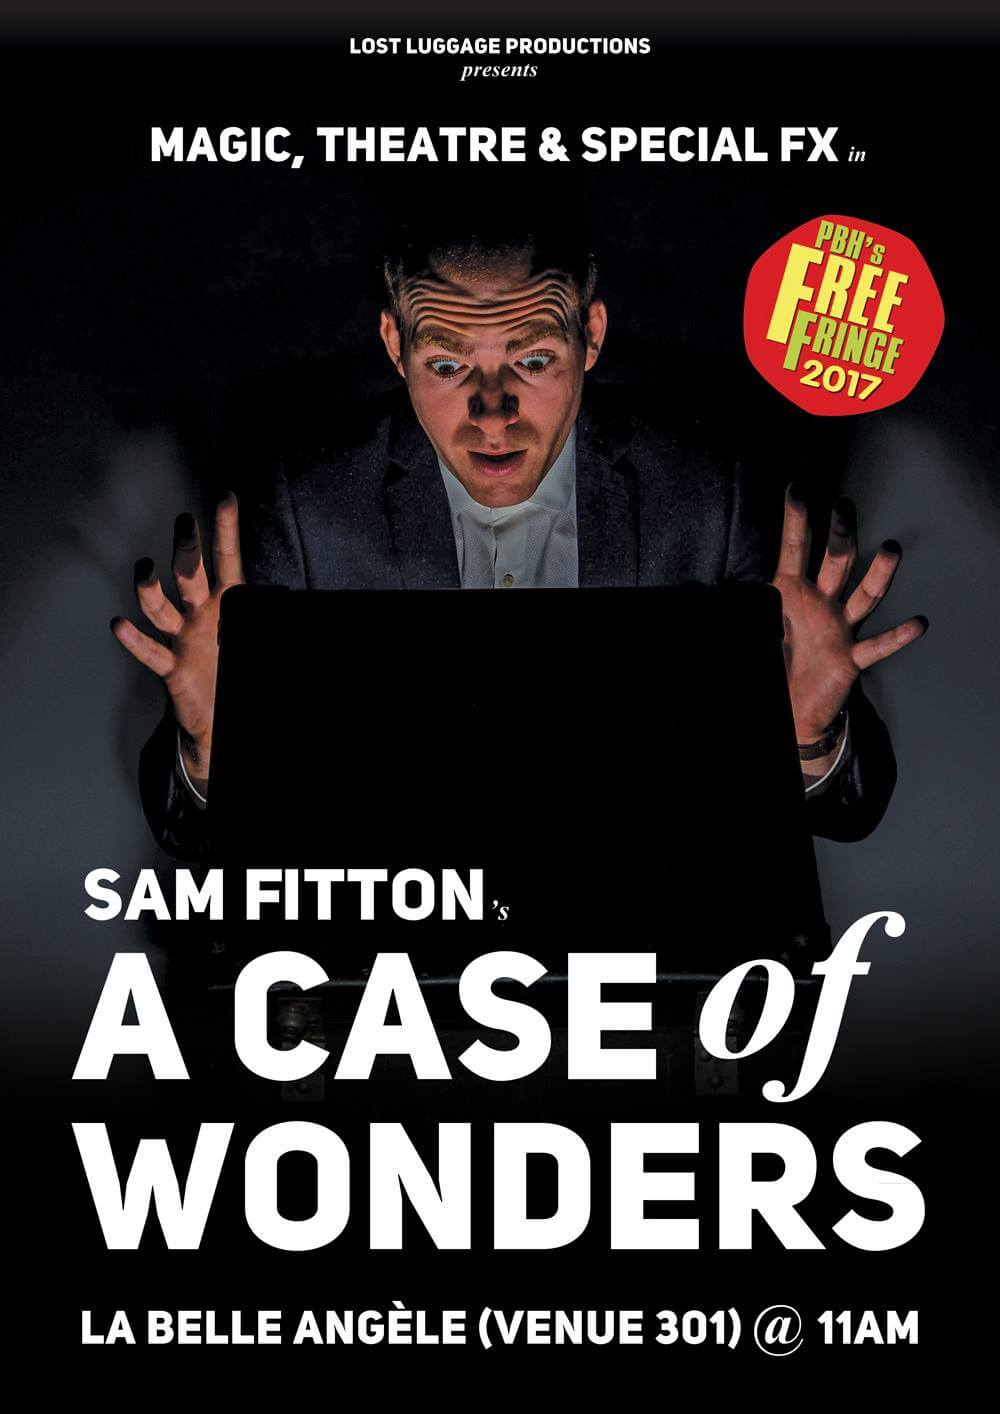 Sam Fitton A Case of Wonders Edinburgh Fringe magic poster